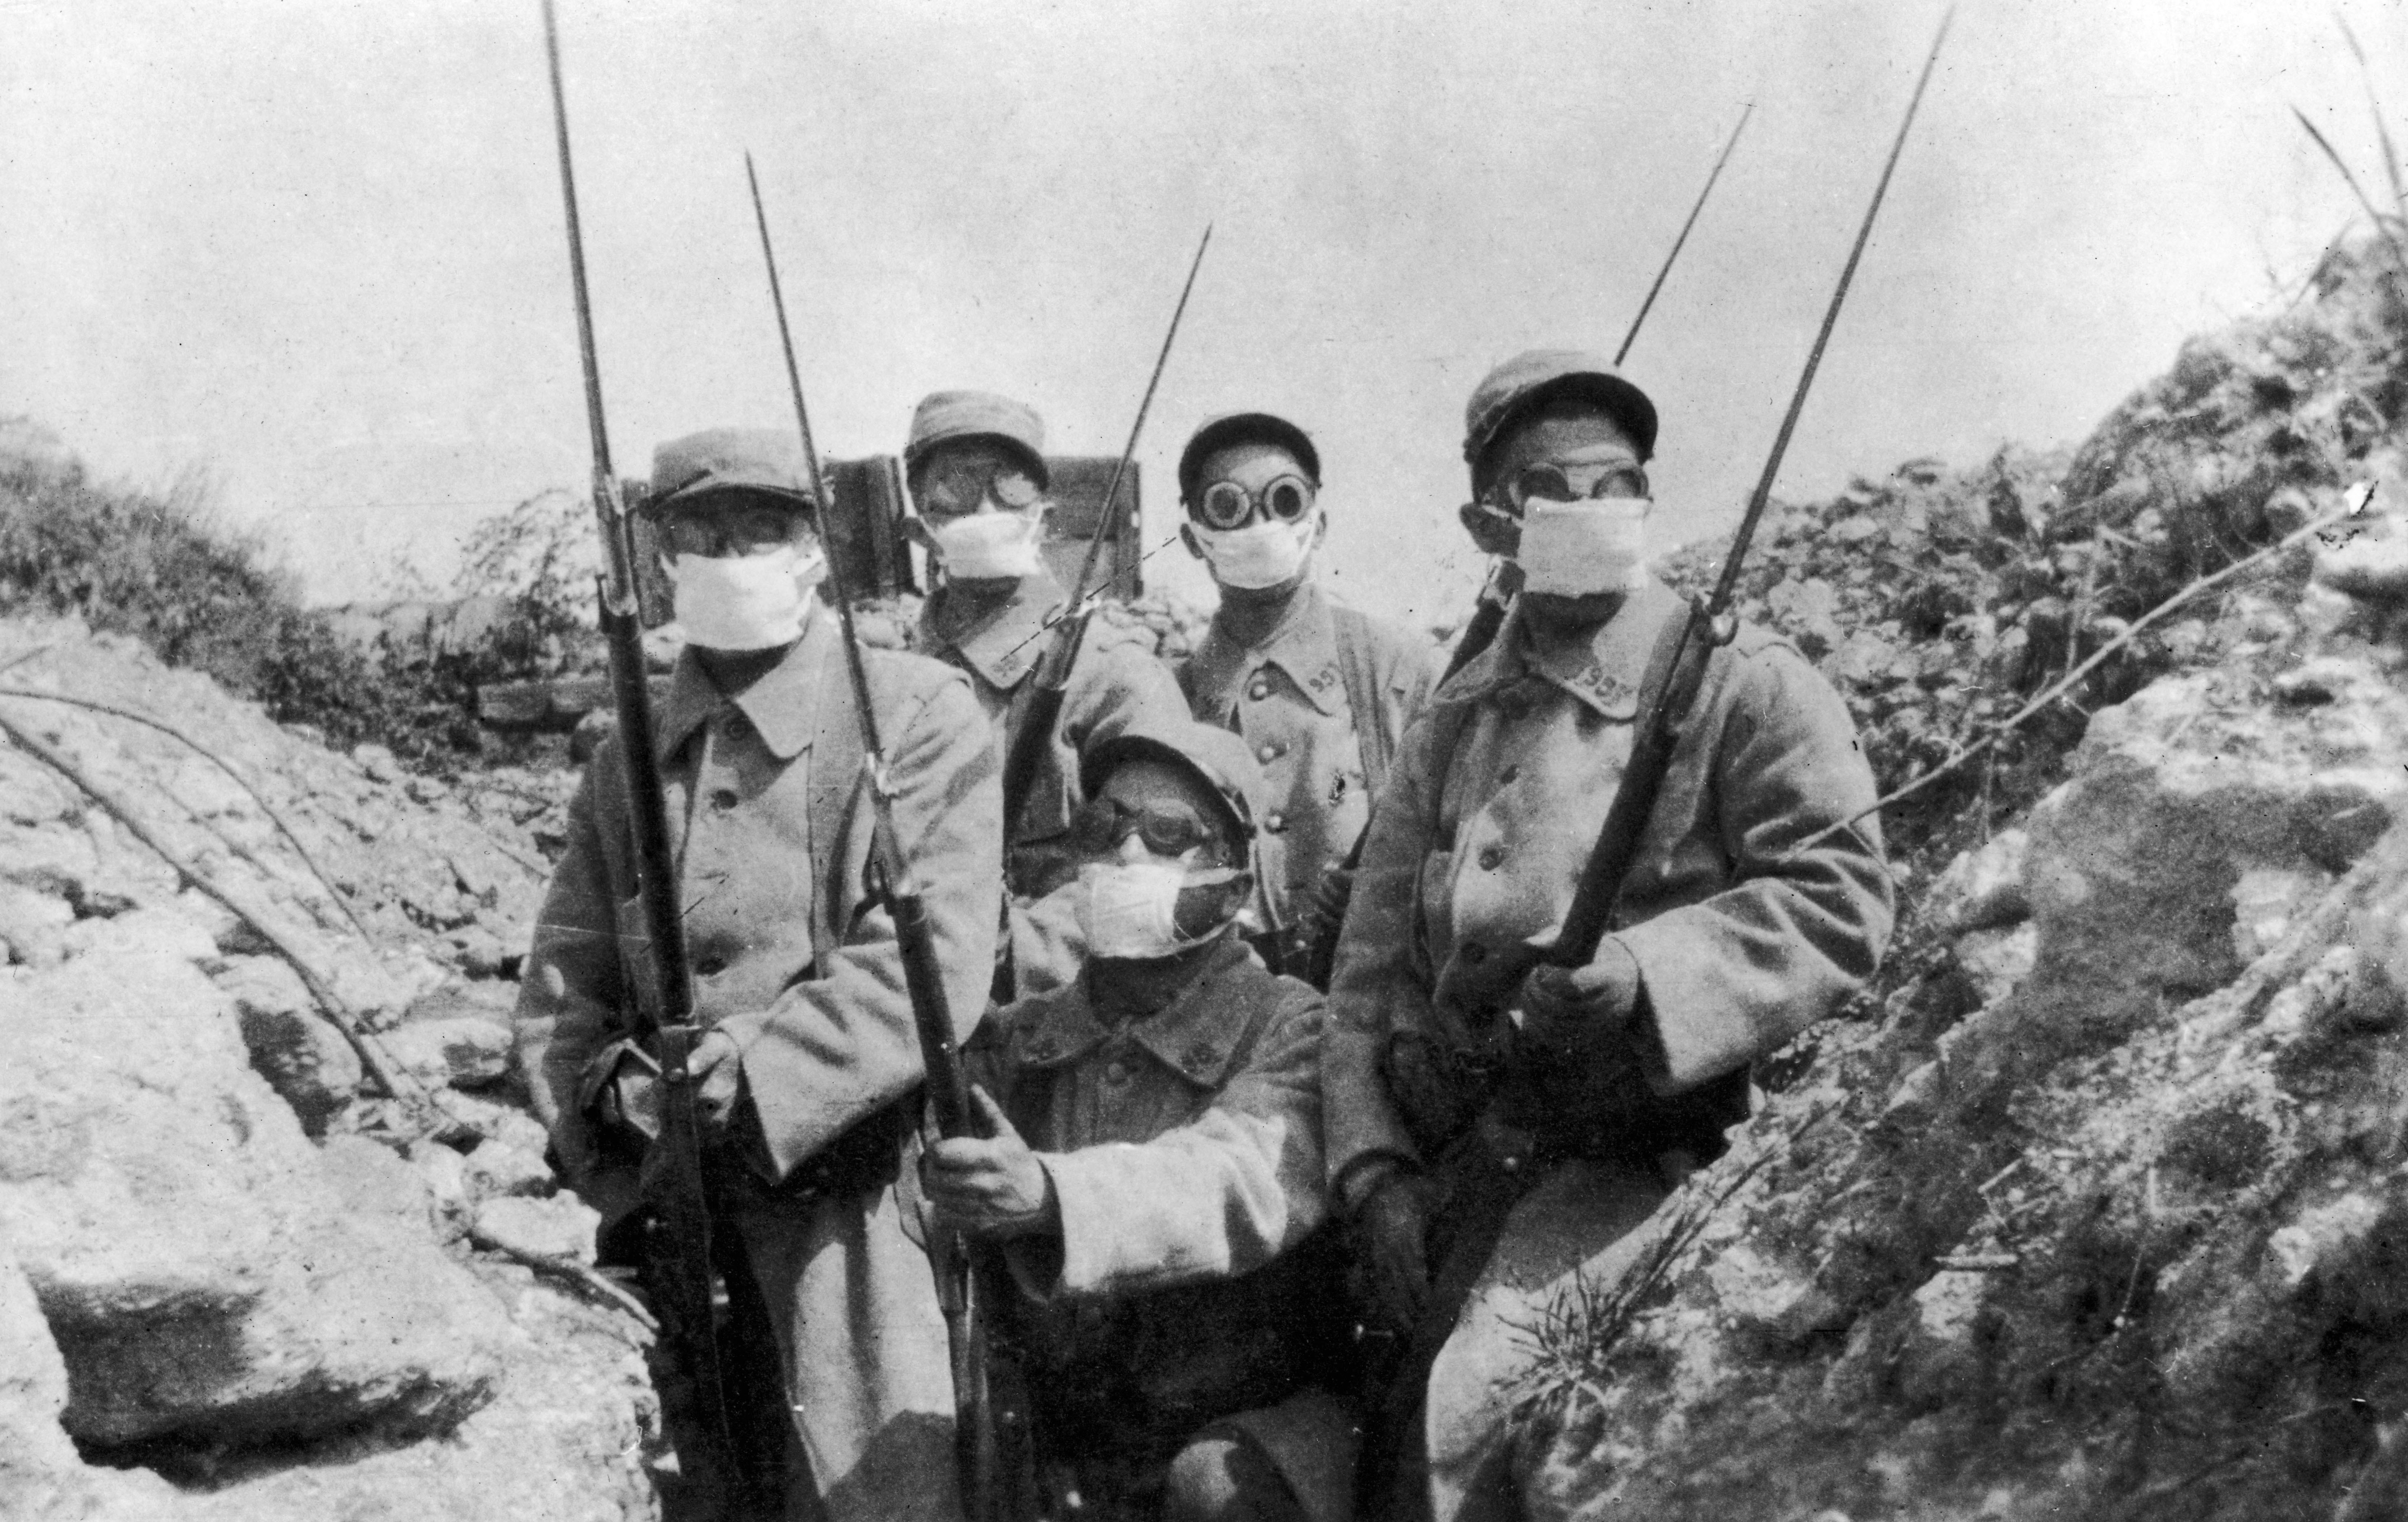 French troops wearing an early form of gas mask in the trenches during the Second Battle of Ypres, which was the first instance of a widespread gas attack. (Photo by Hulton Archive/Getty Images)